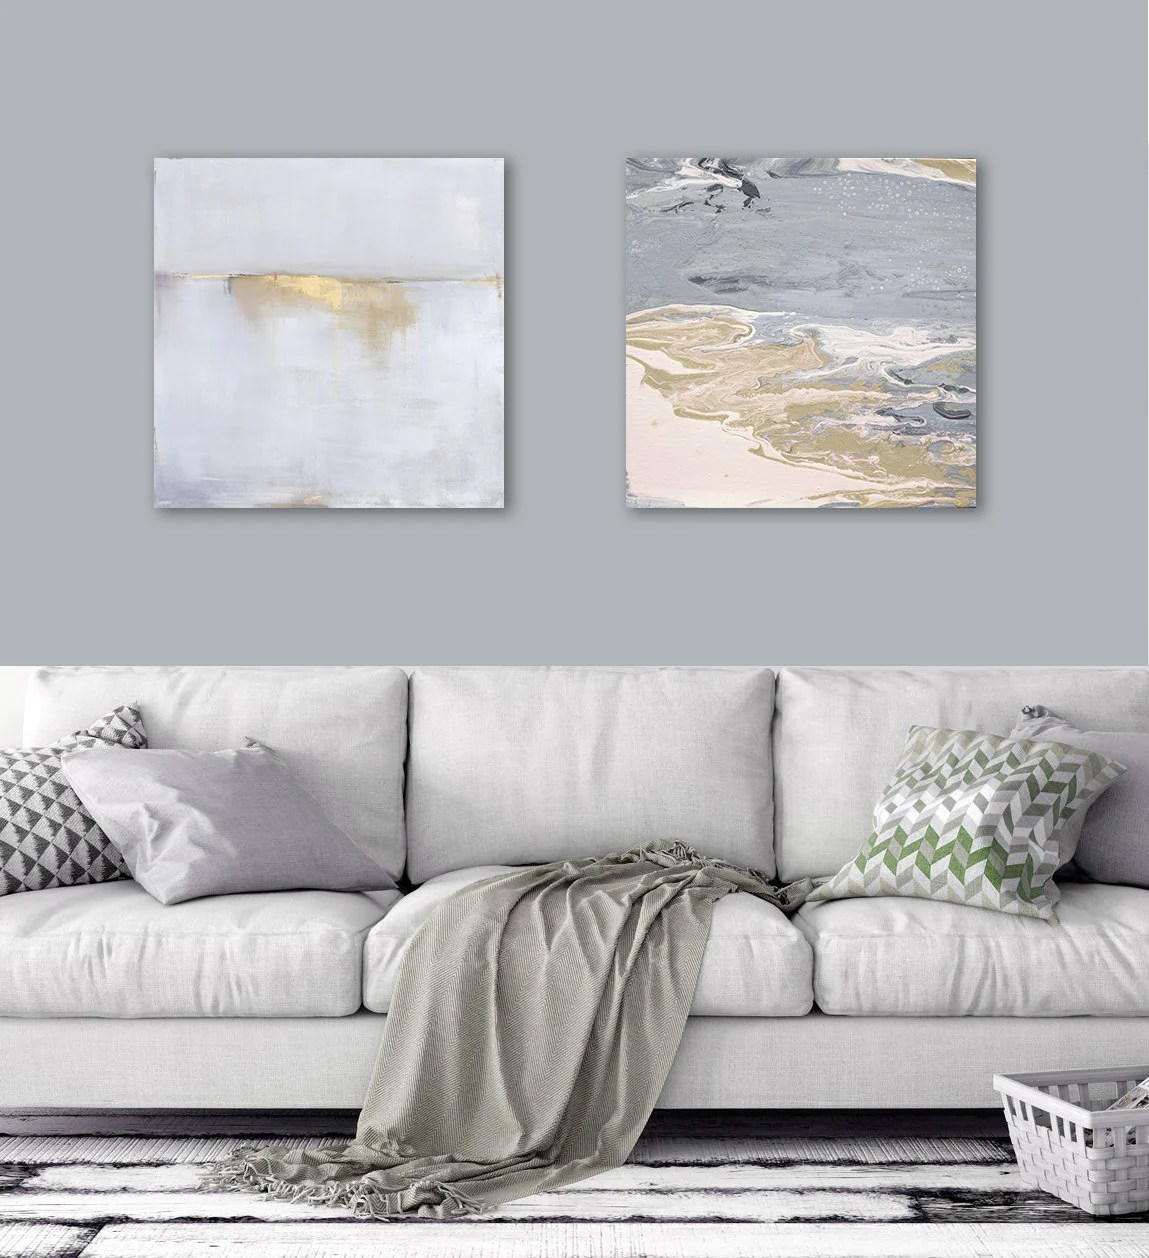 Abstract Art Prints On Canvas 2 20x20 Abstract Art Prints Canvas Large Wall Art Abstract Landscape Pour Painting Grey Gold Art Best Selling Item Set Of 2 Prints